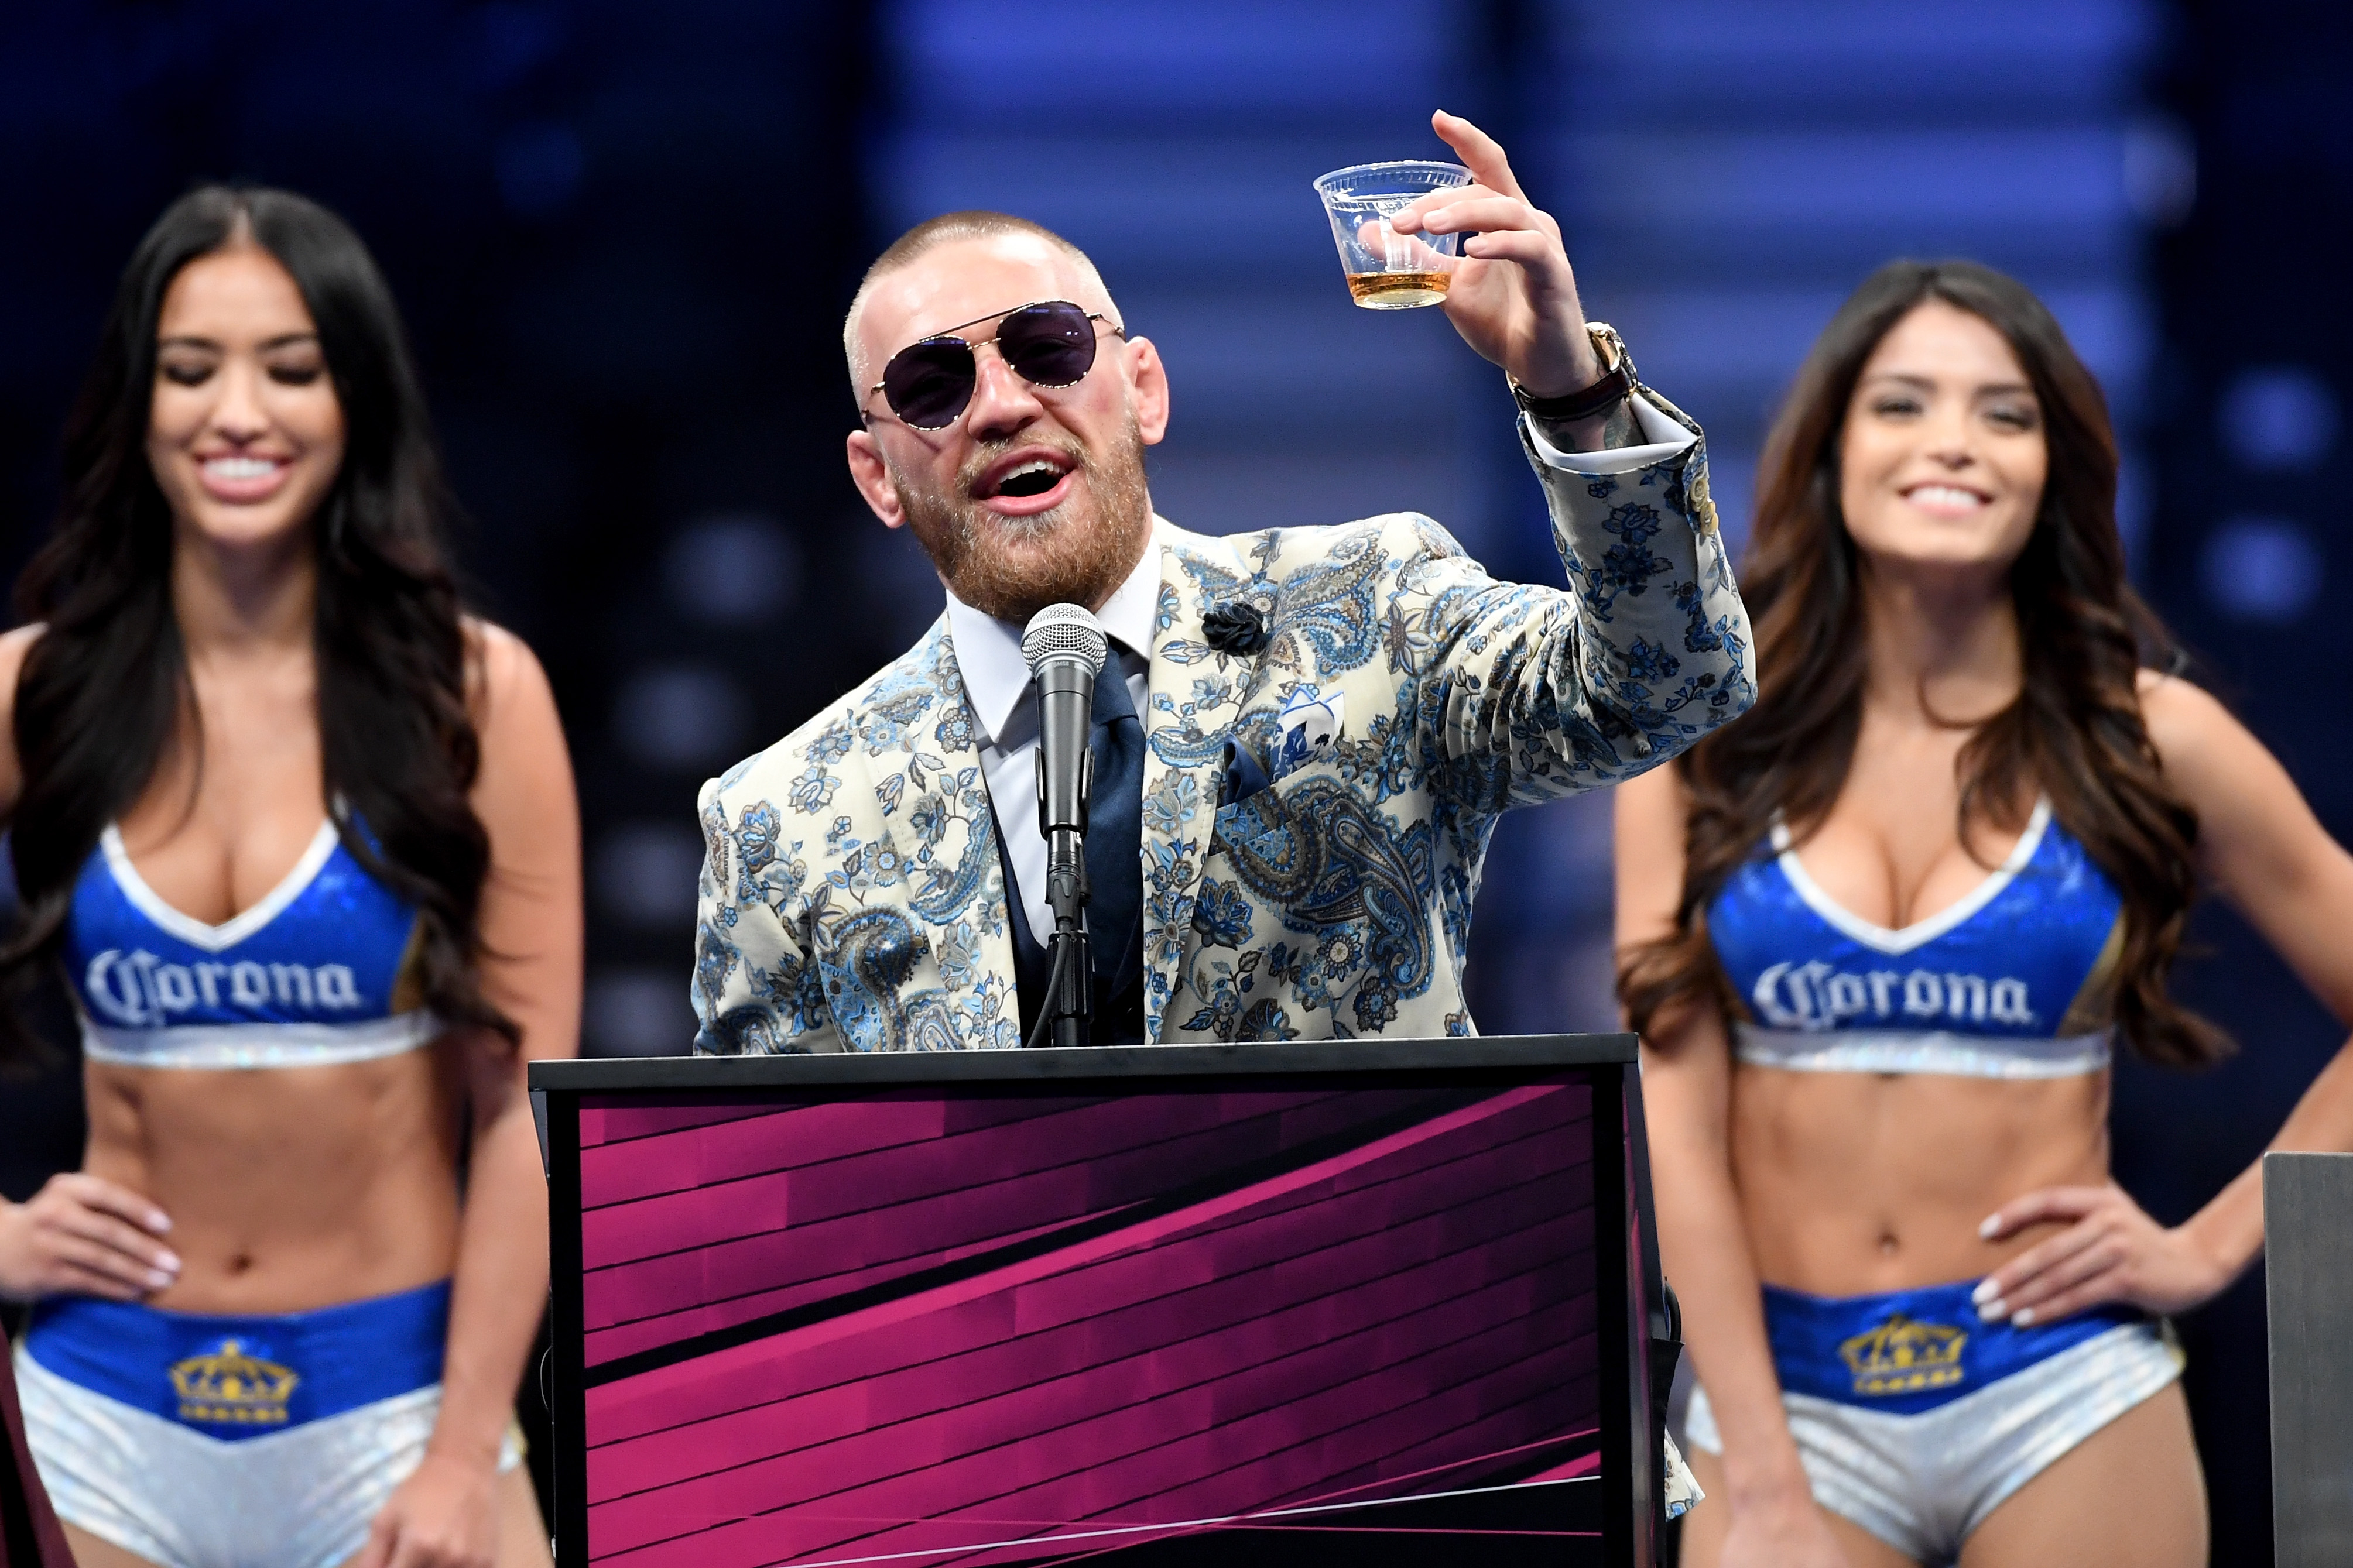 Conor McGregor holds up a cup of his Notorious-branded Irish whiskey